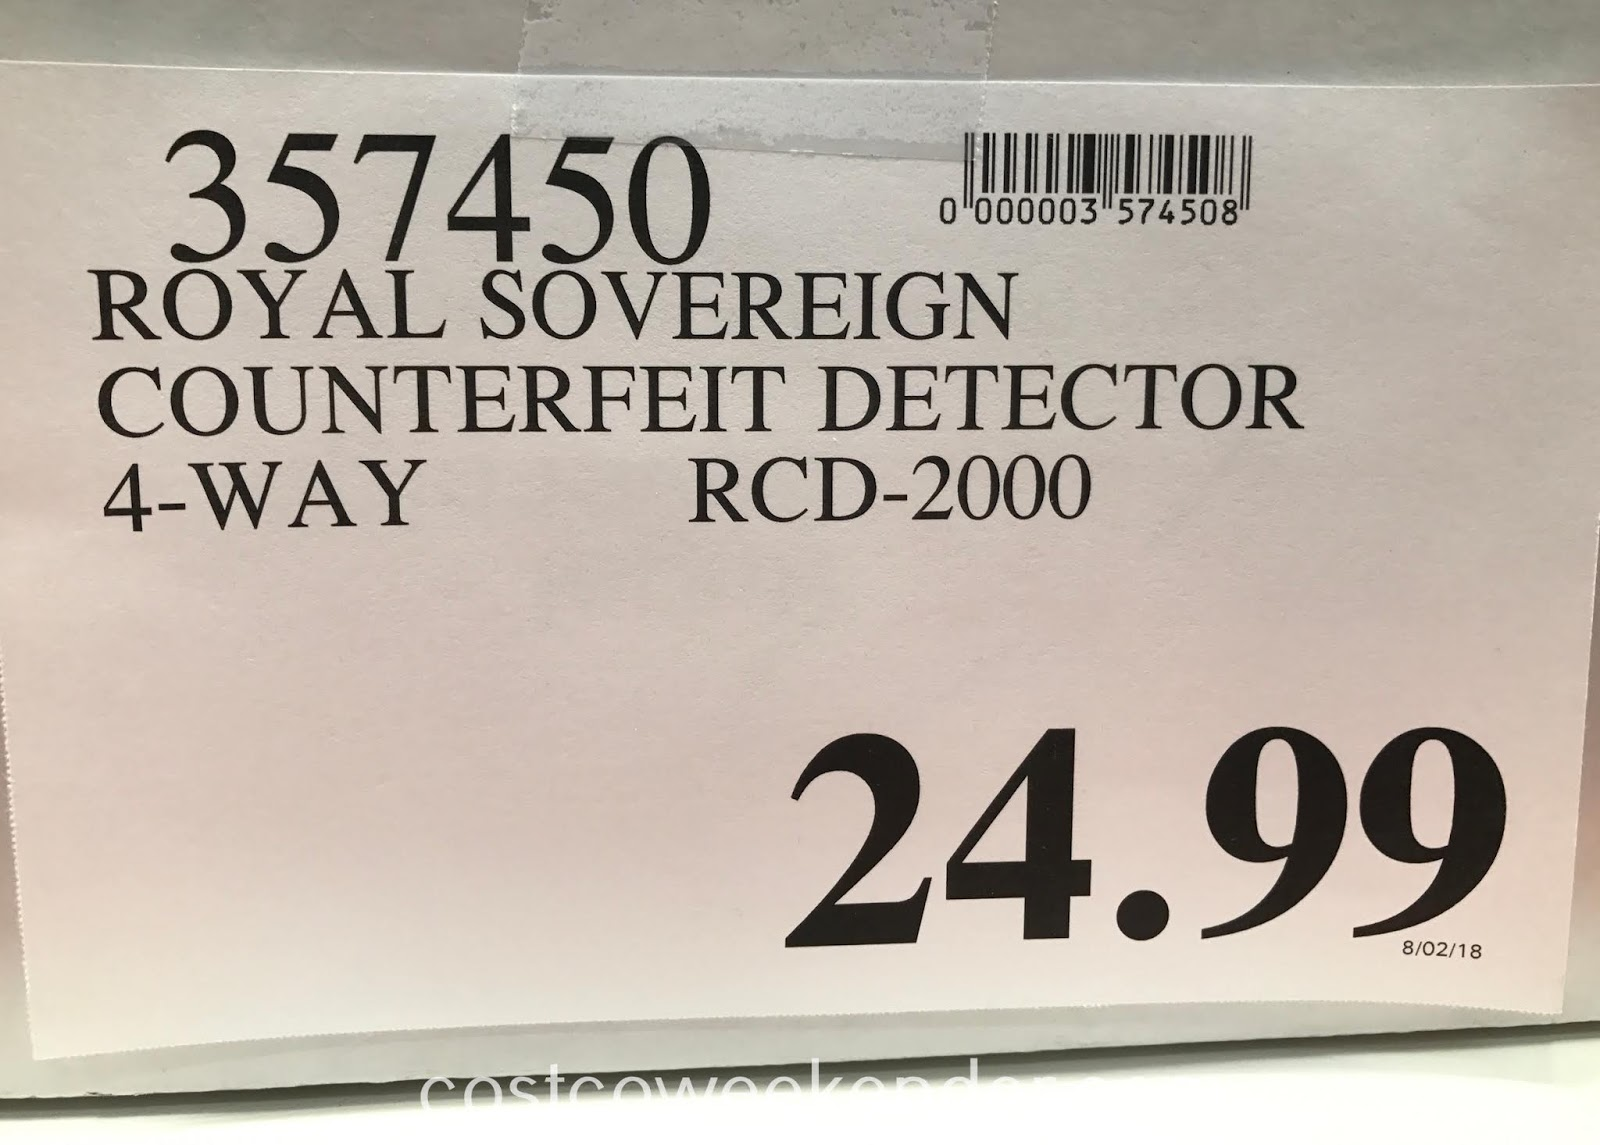 Deal for the Royal Sovereign Counterfeit Detector (RCD-2000) at Costco